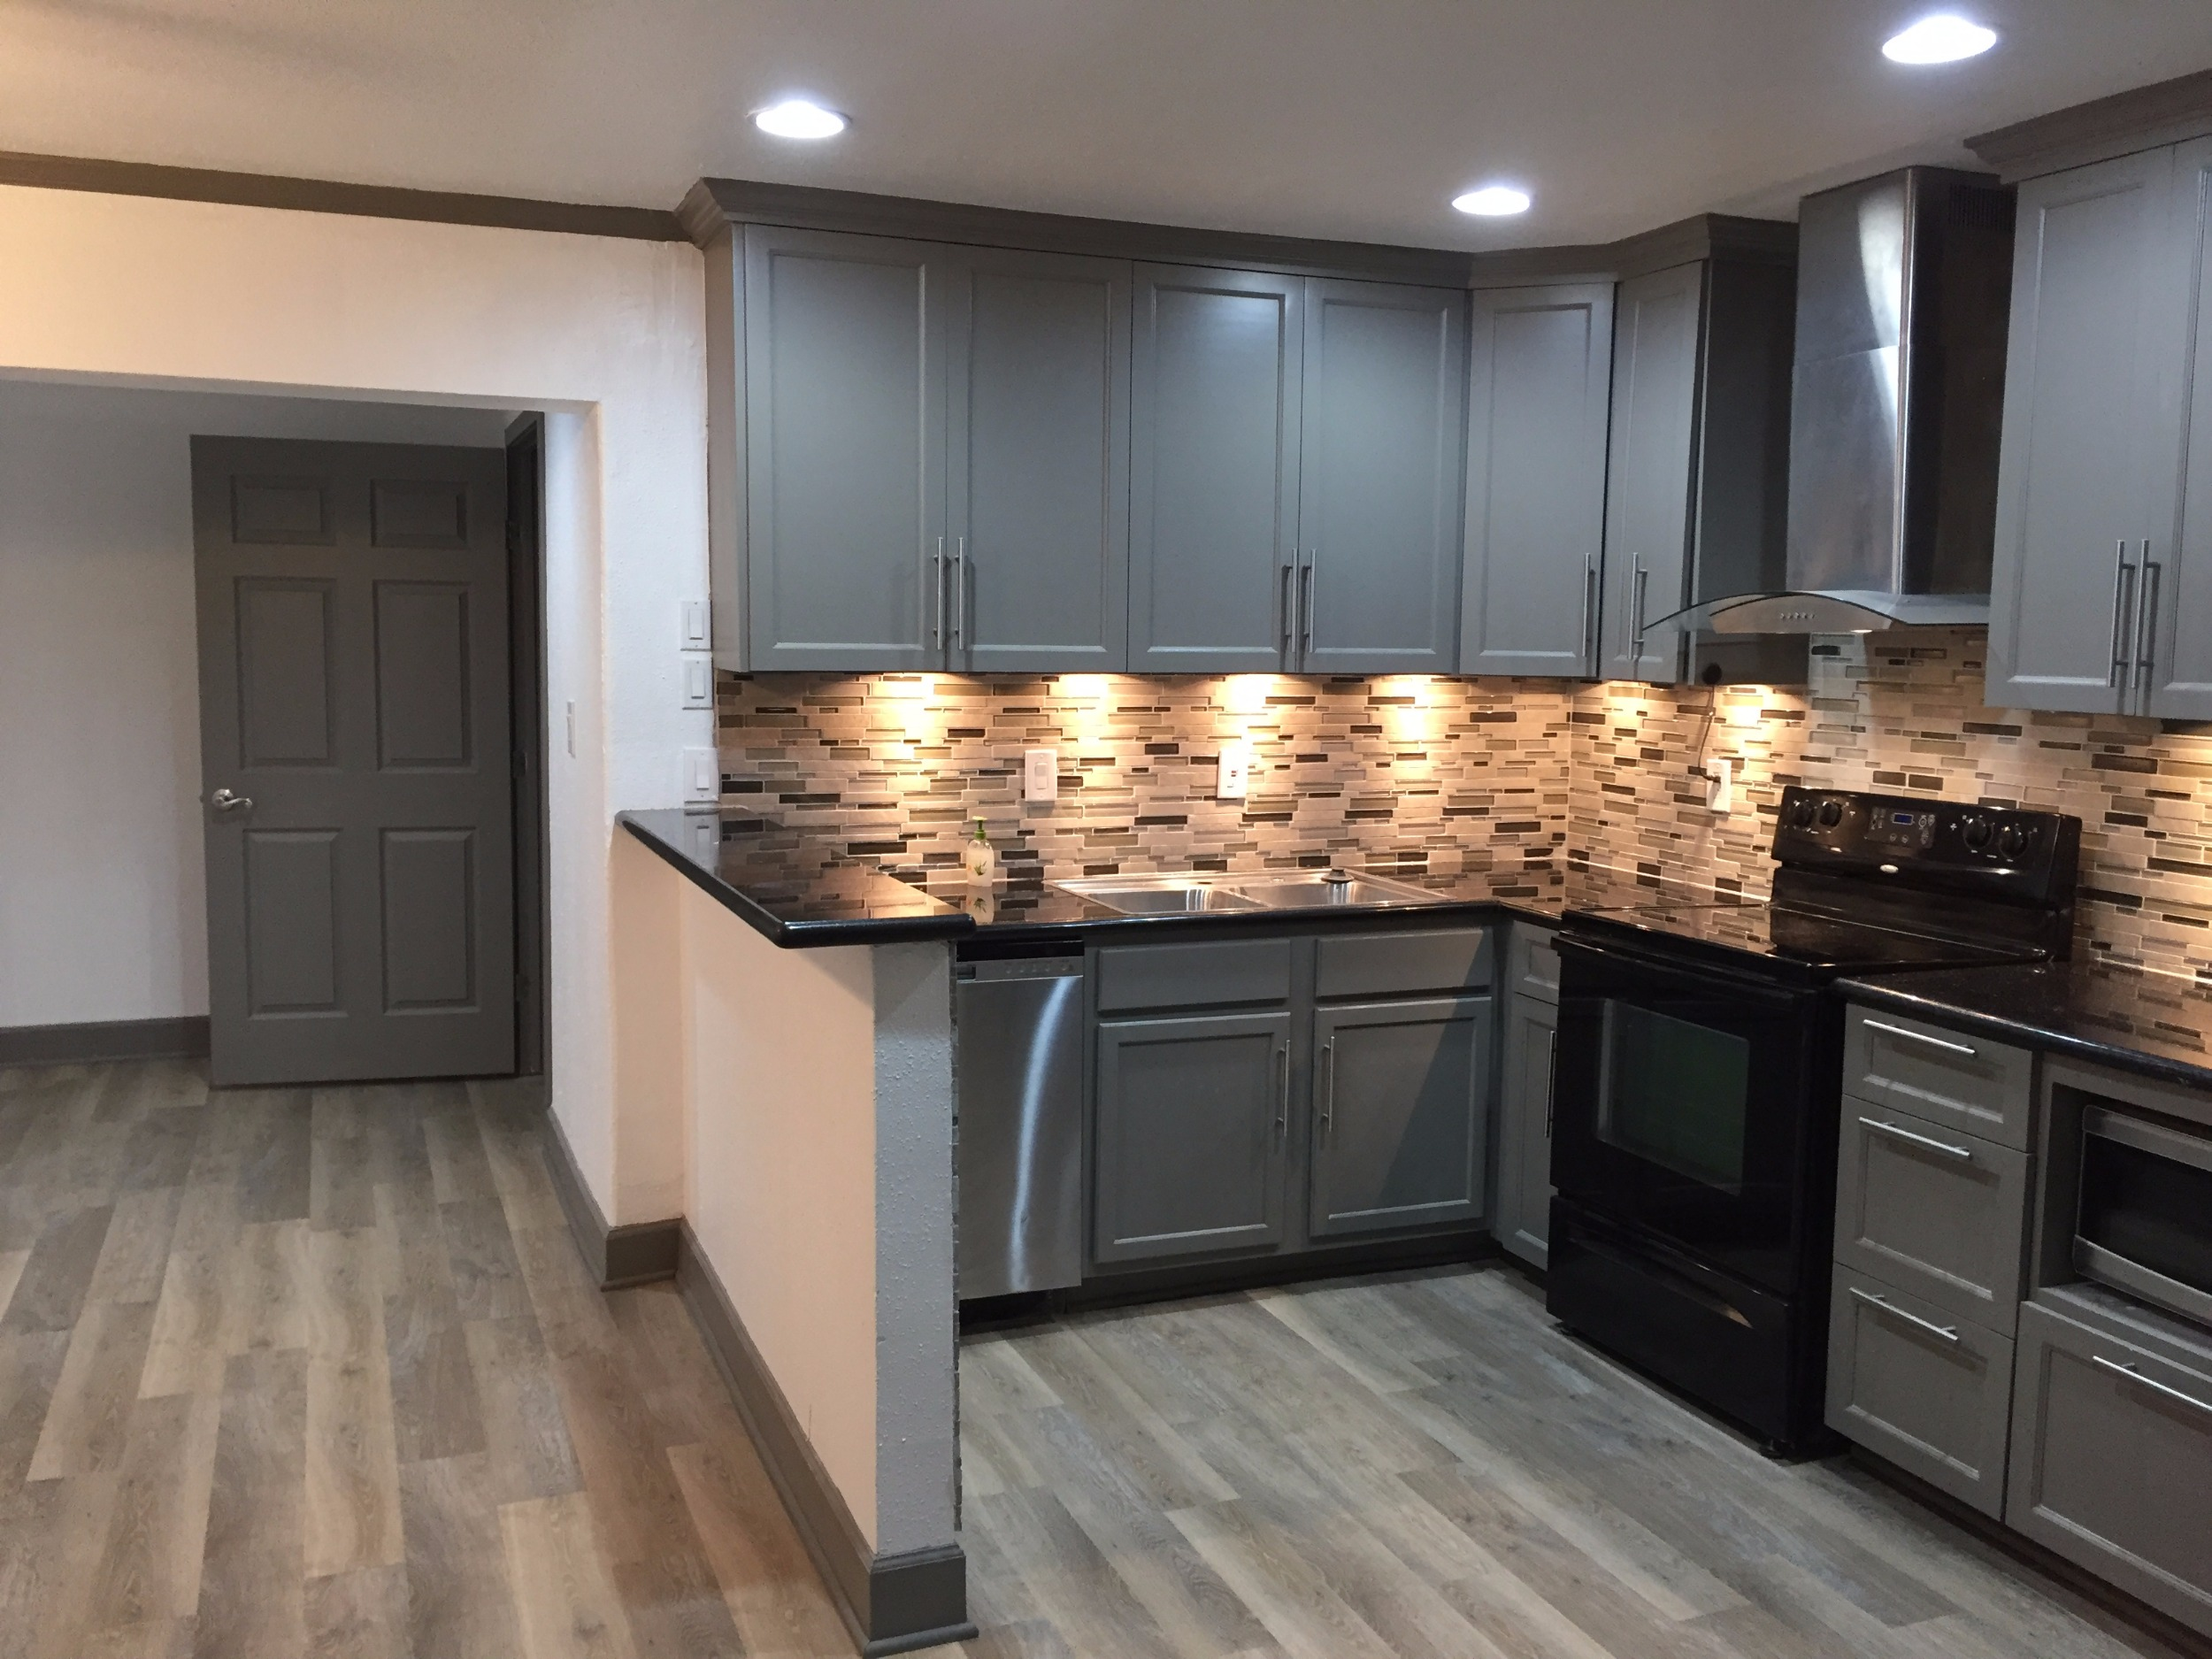 Ray J Verified Customer Review Of Kitchen Sink Base Cabinet  Unfinished  Oak 42 Base Cabinet Surplus Building Materials90